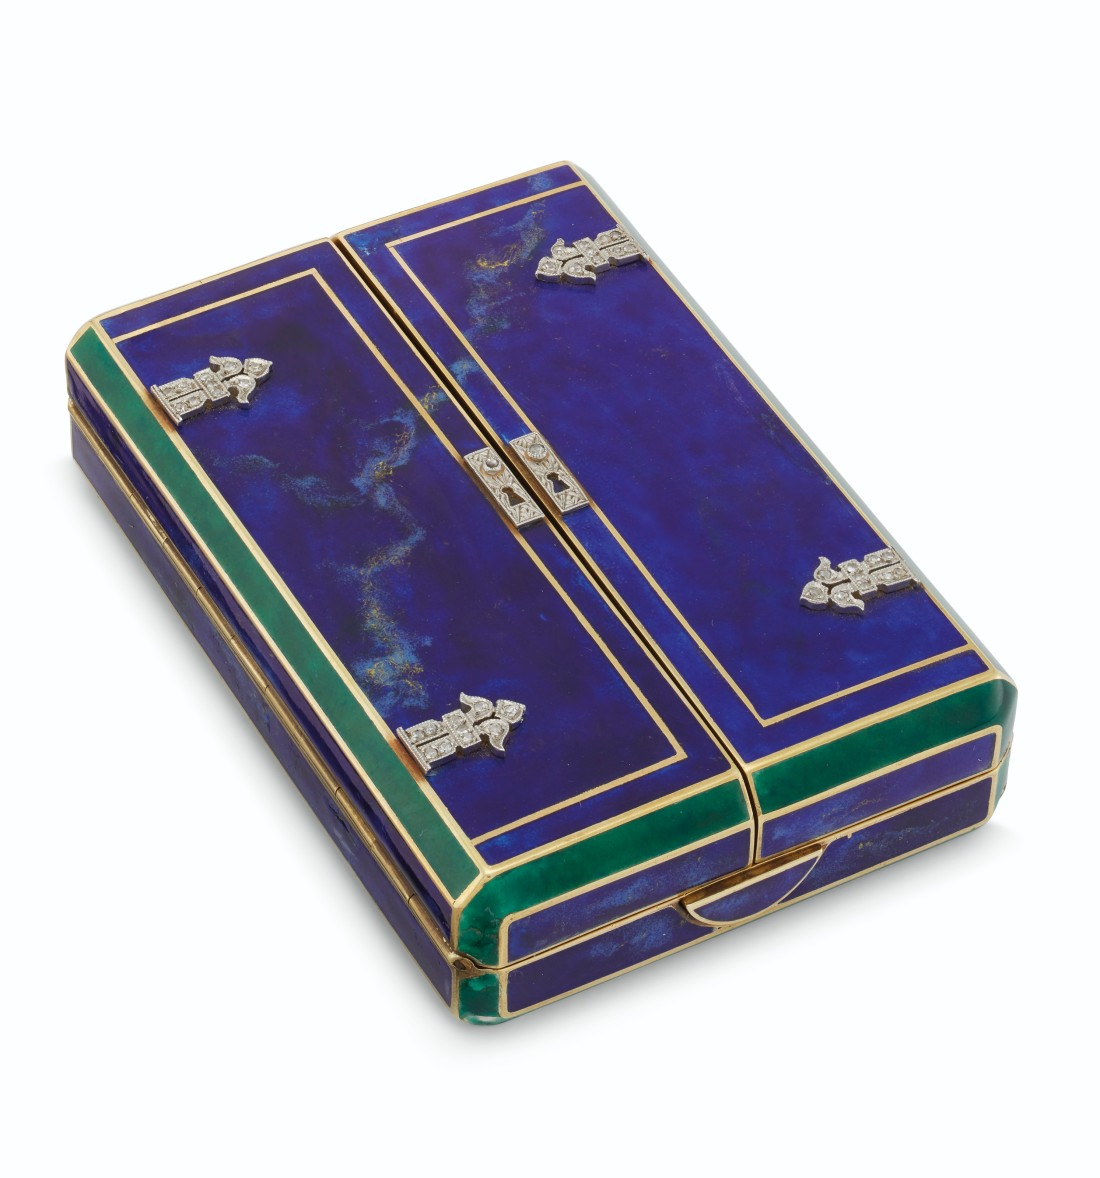 2020_NYR_19552_0009_000(an_american_art_deco_gold_enamel_and_diamond_vanity_case_mark_of_em_ga)